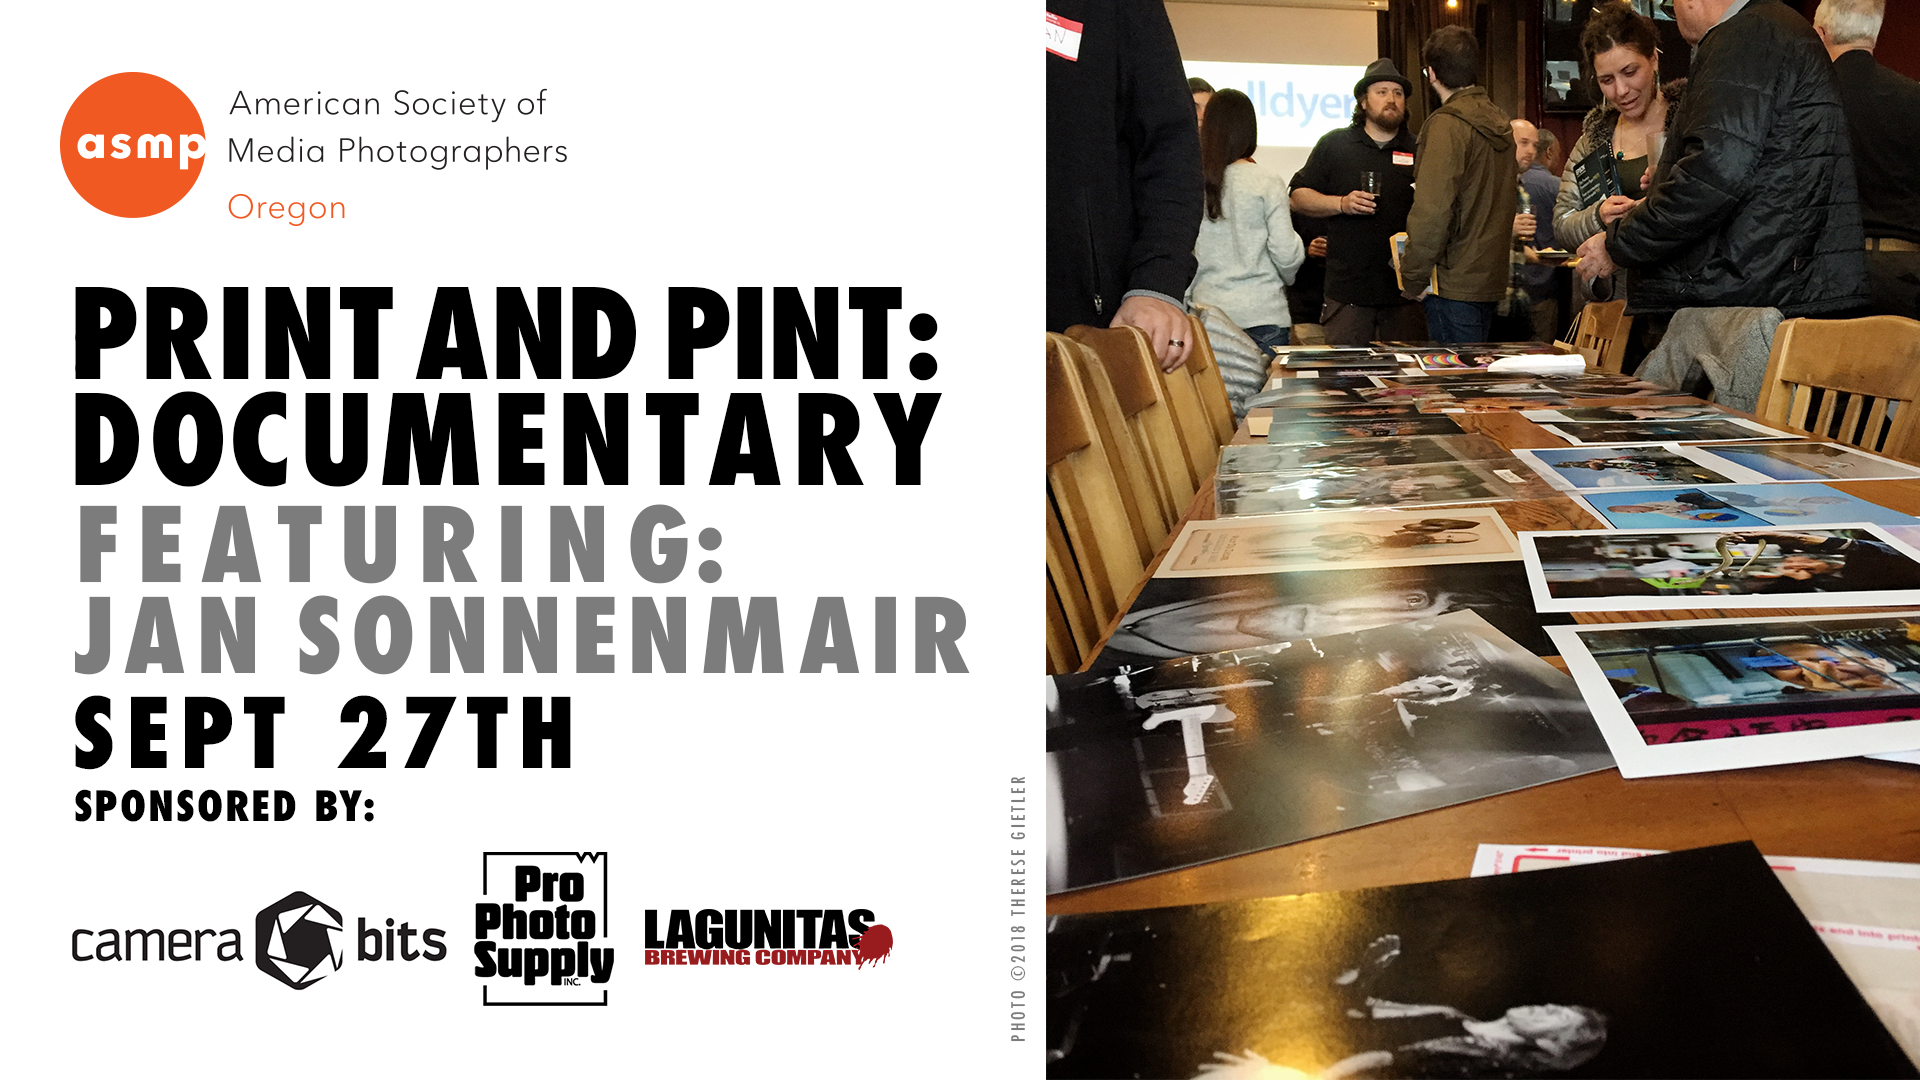 ASMP Print and Pint - September 27, 2018